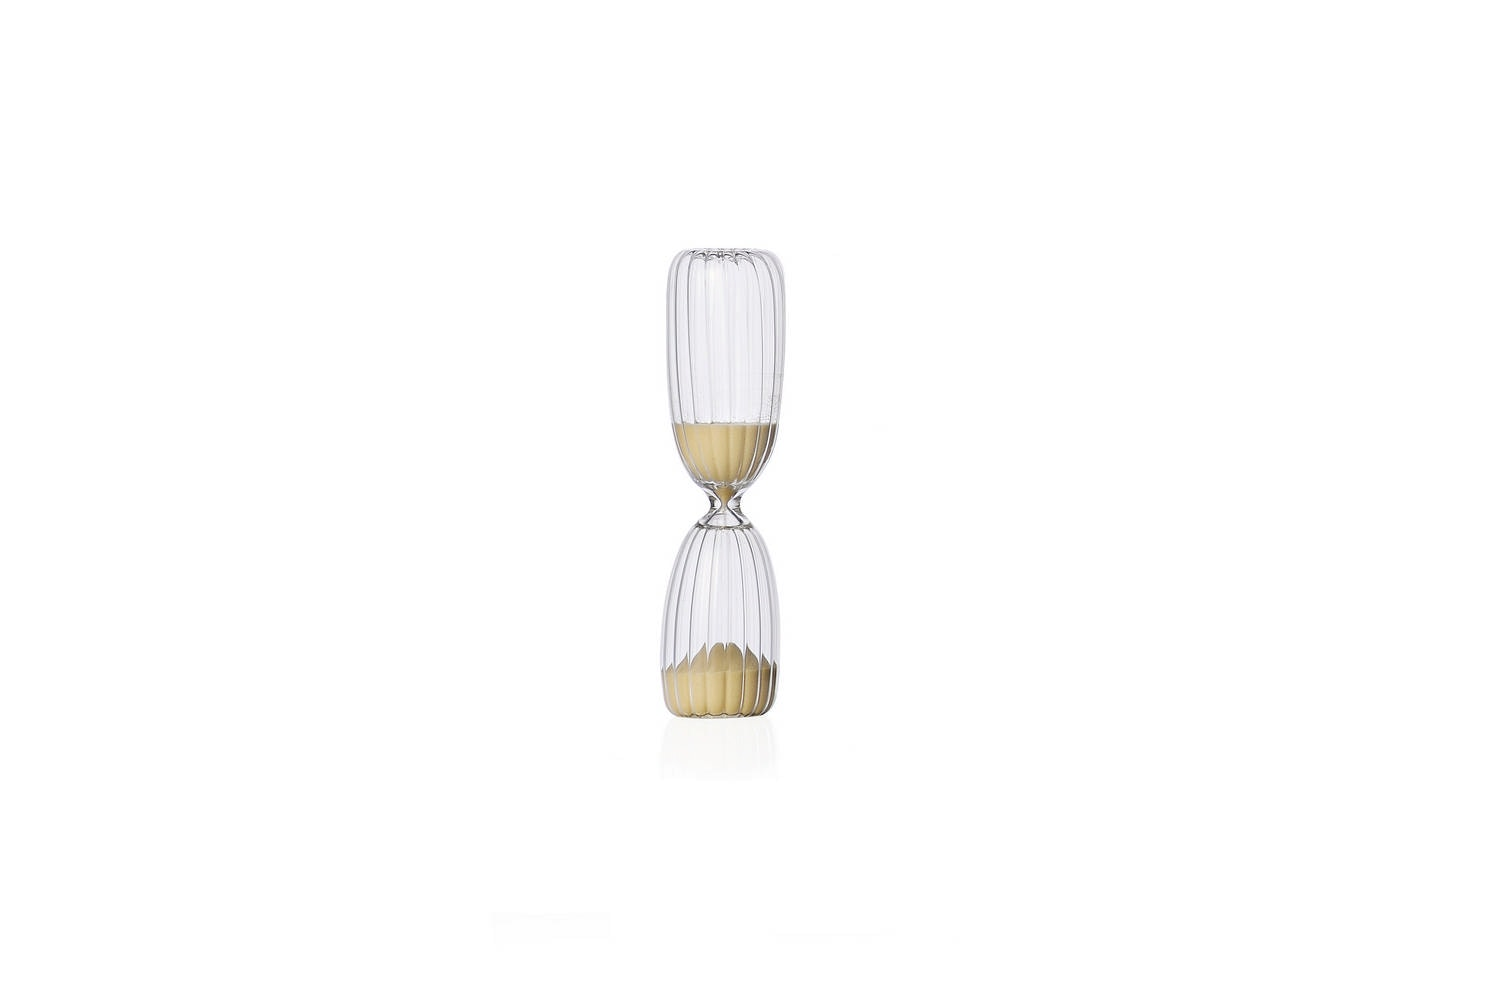 Times Hourglass 5 Minutes - Transparent by Denis Guidone for Ichendorf Milano